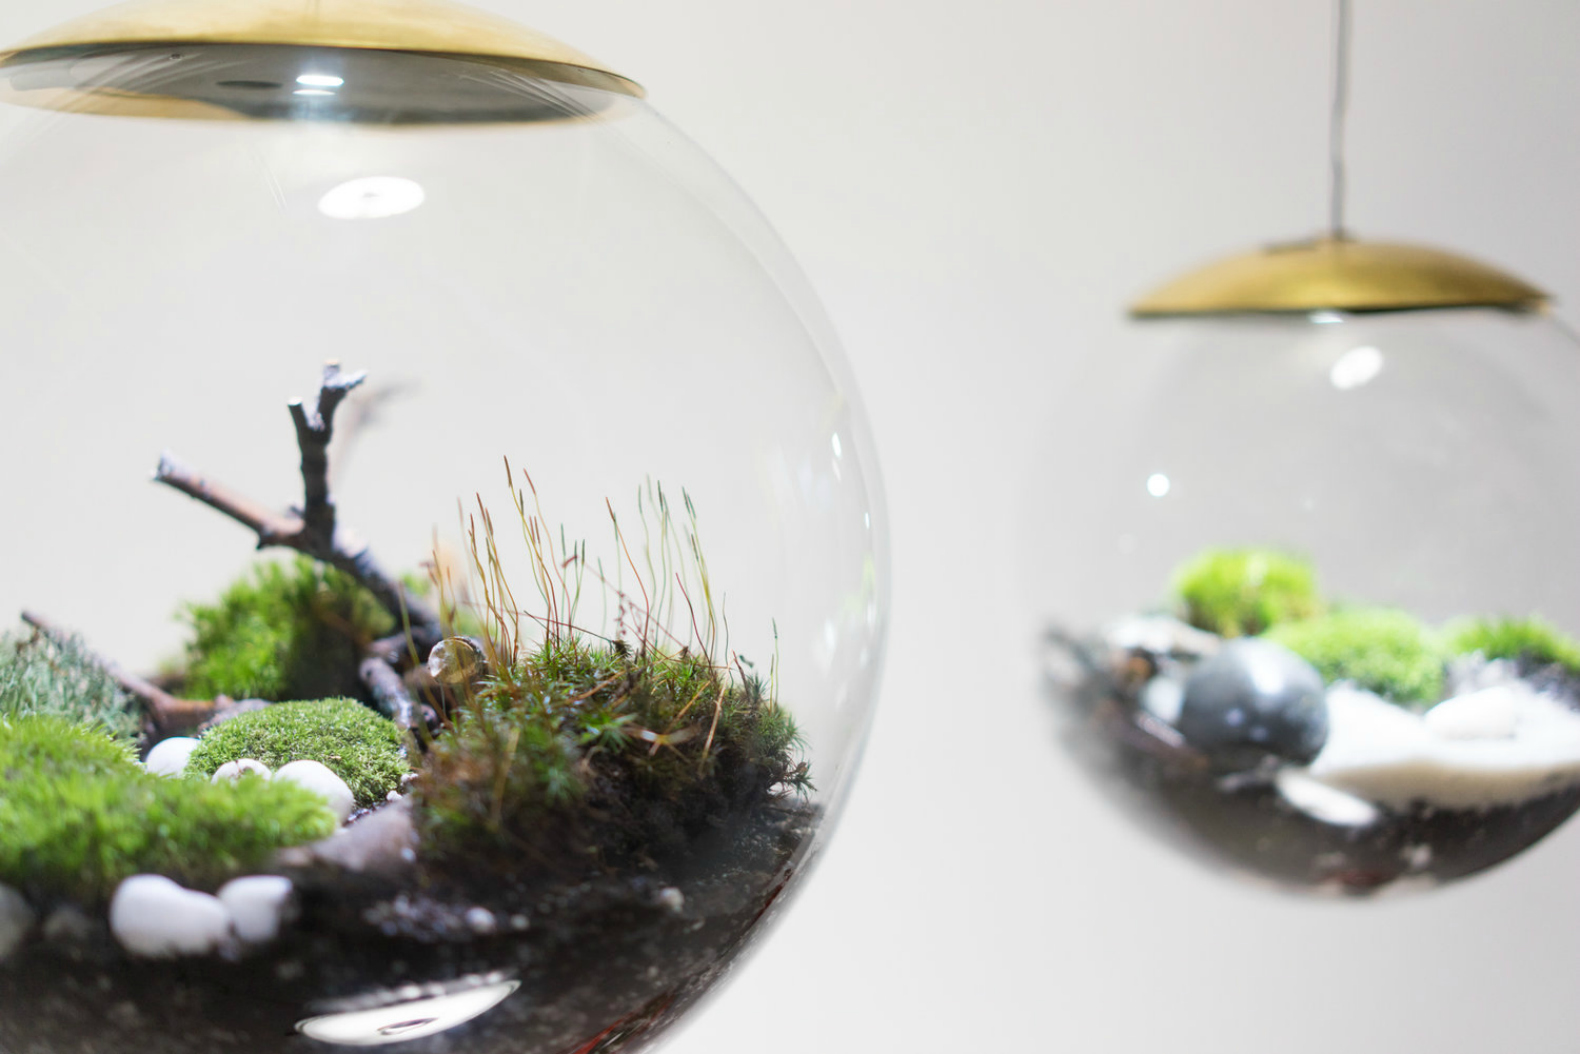 Interior Led Lights For Home These Amazing Terrarium Lamps Grow Plants In Even The